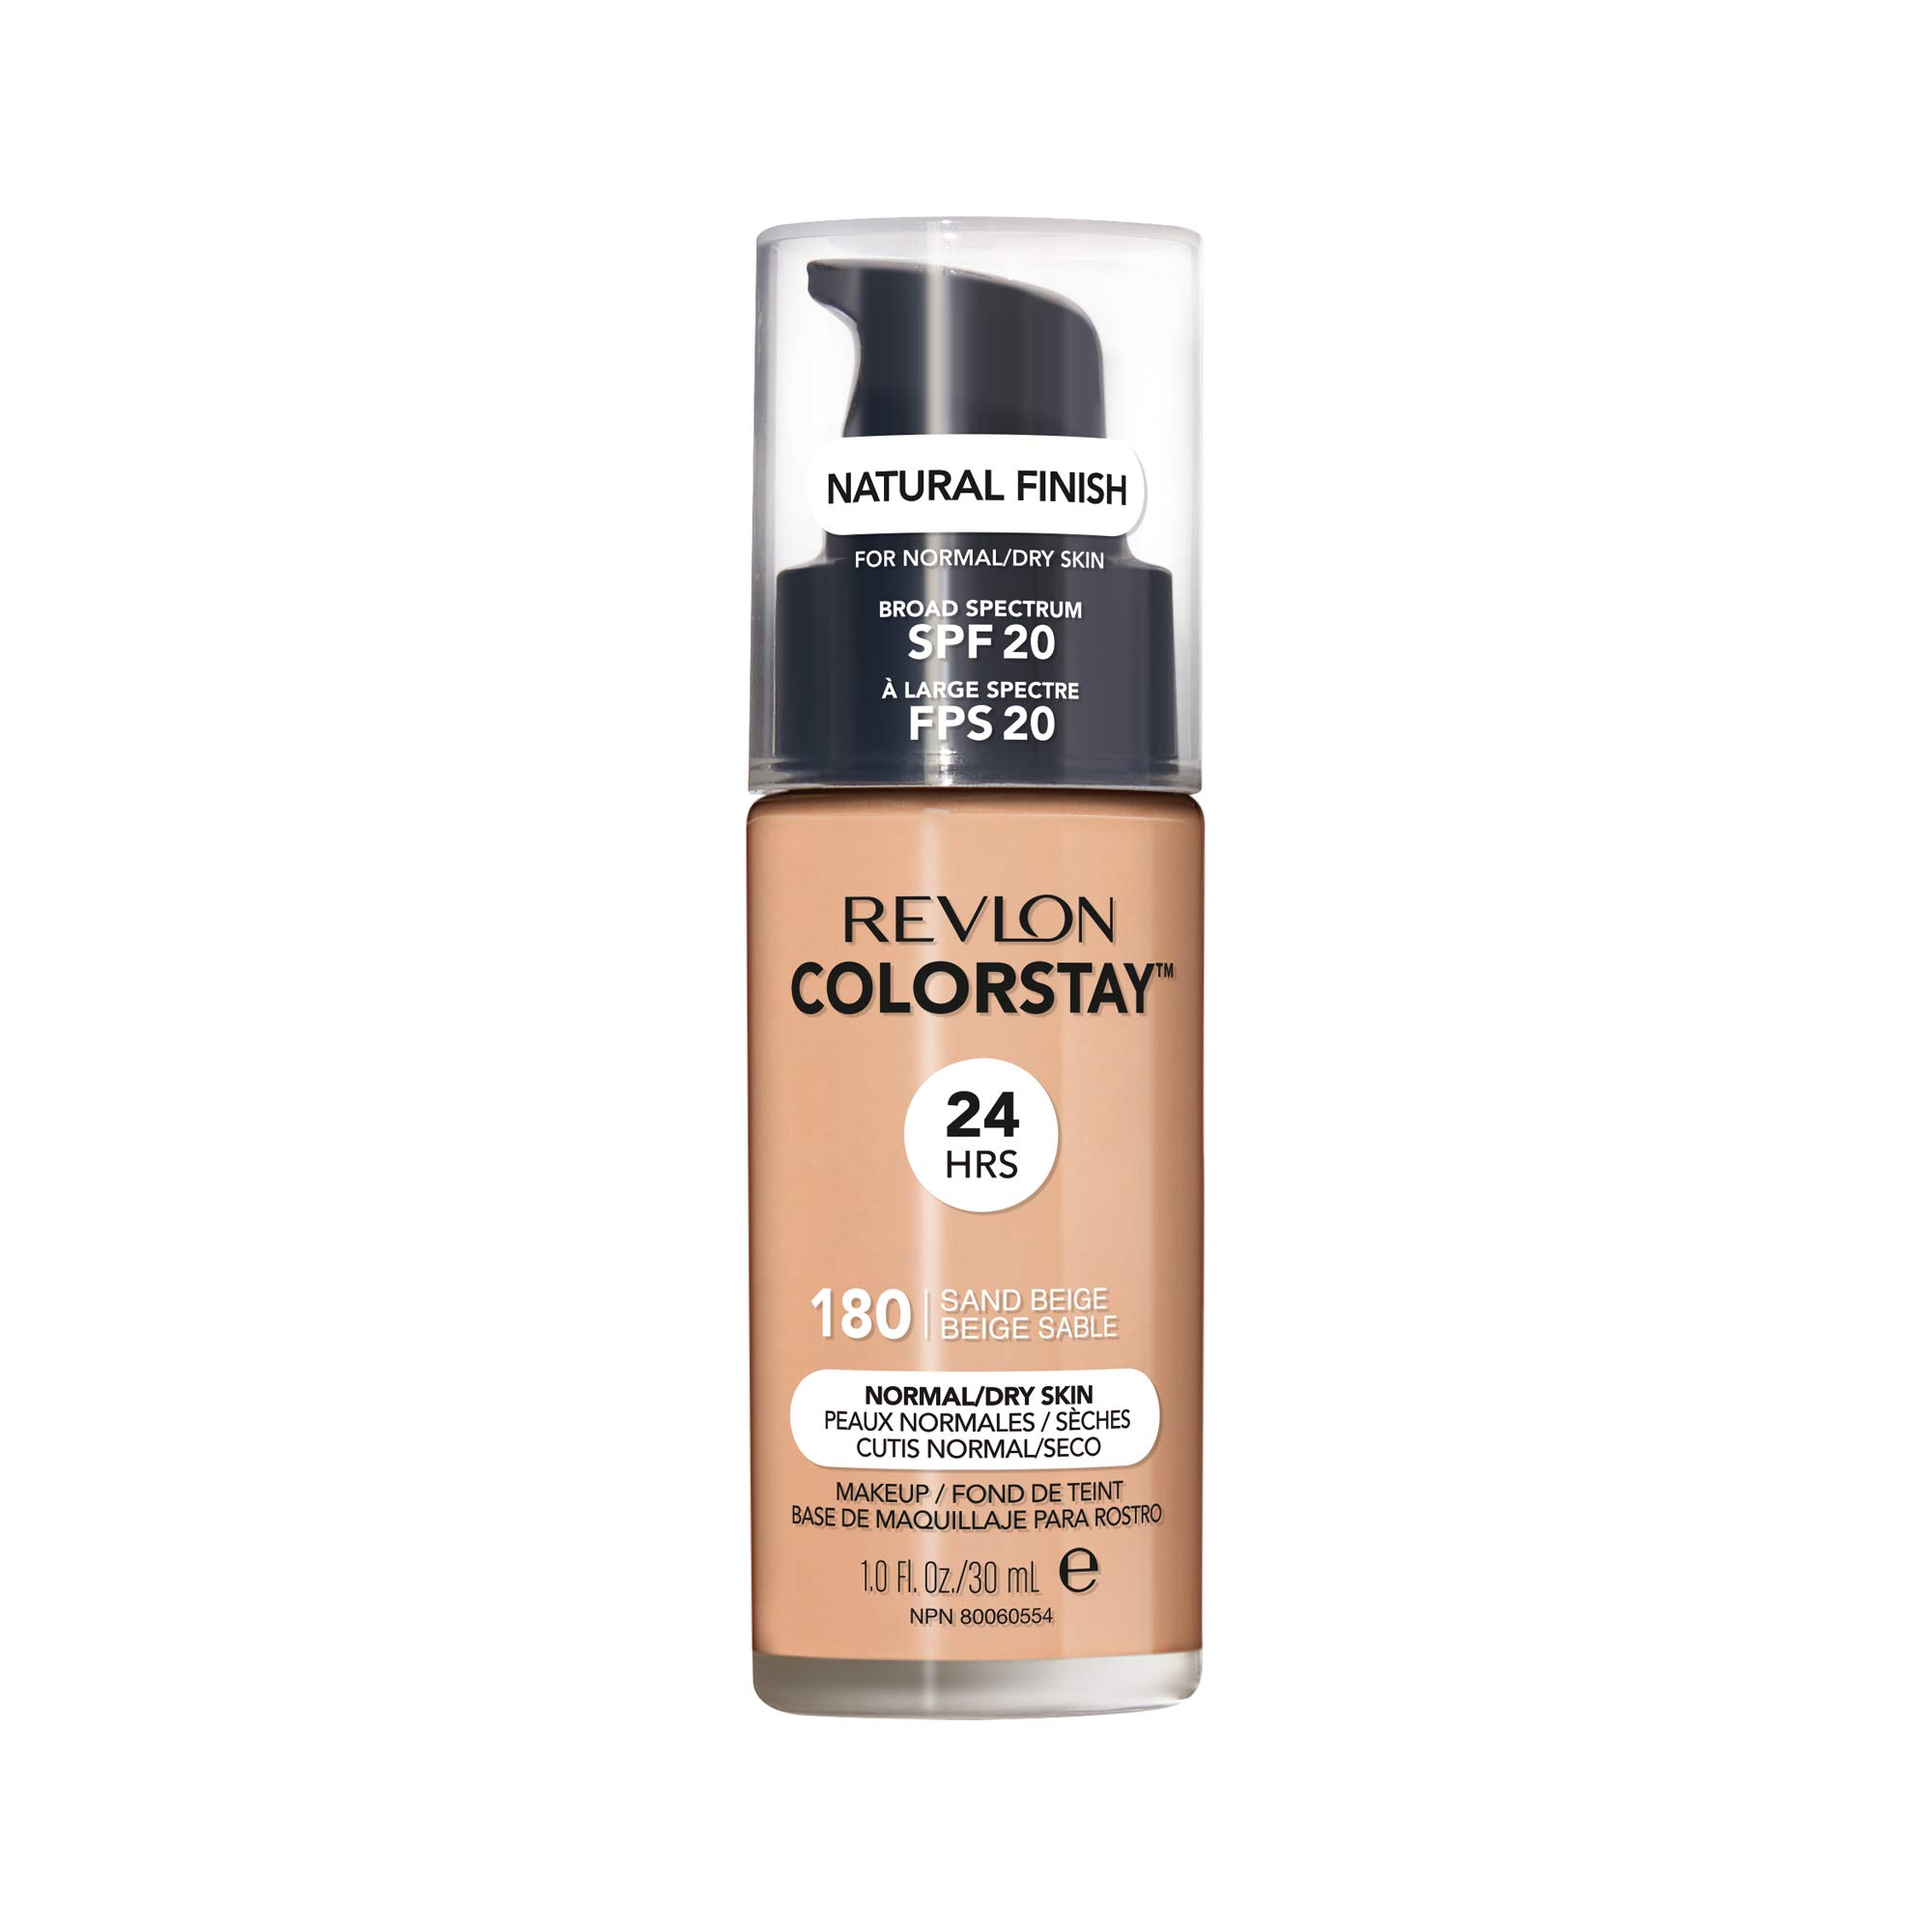 Revlon ColorStay Makeup for Normal/Dry Skin SPF 20, Longwear Liquid Foundation, with Medium-Full Coverage, Natural Finish, Oil Free, 135 Vanilla, 1.0 oz